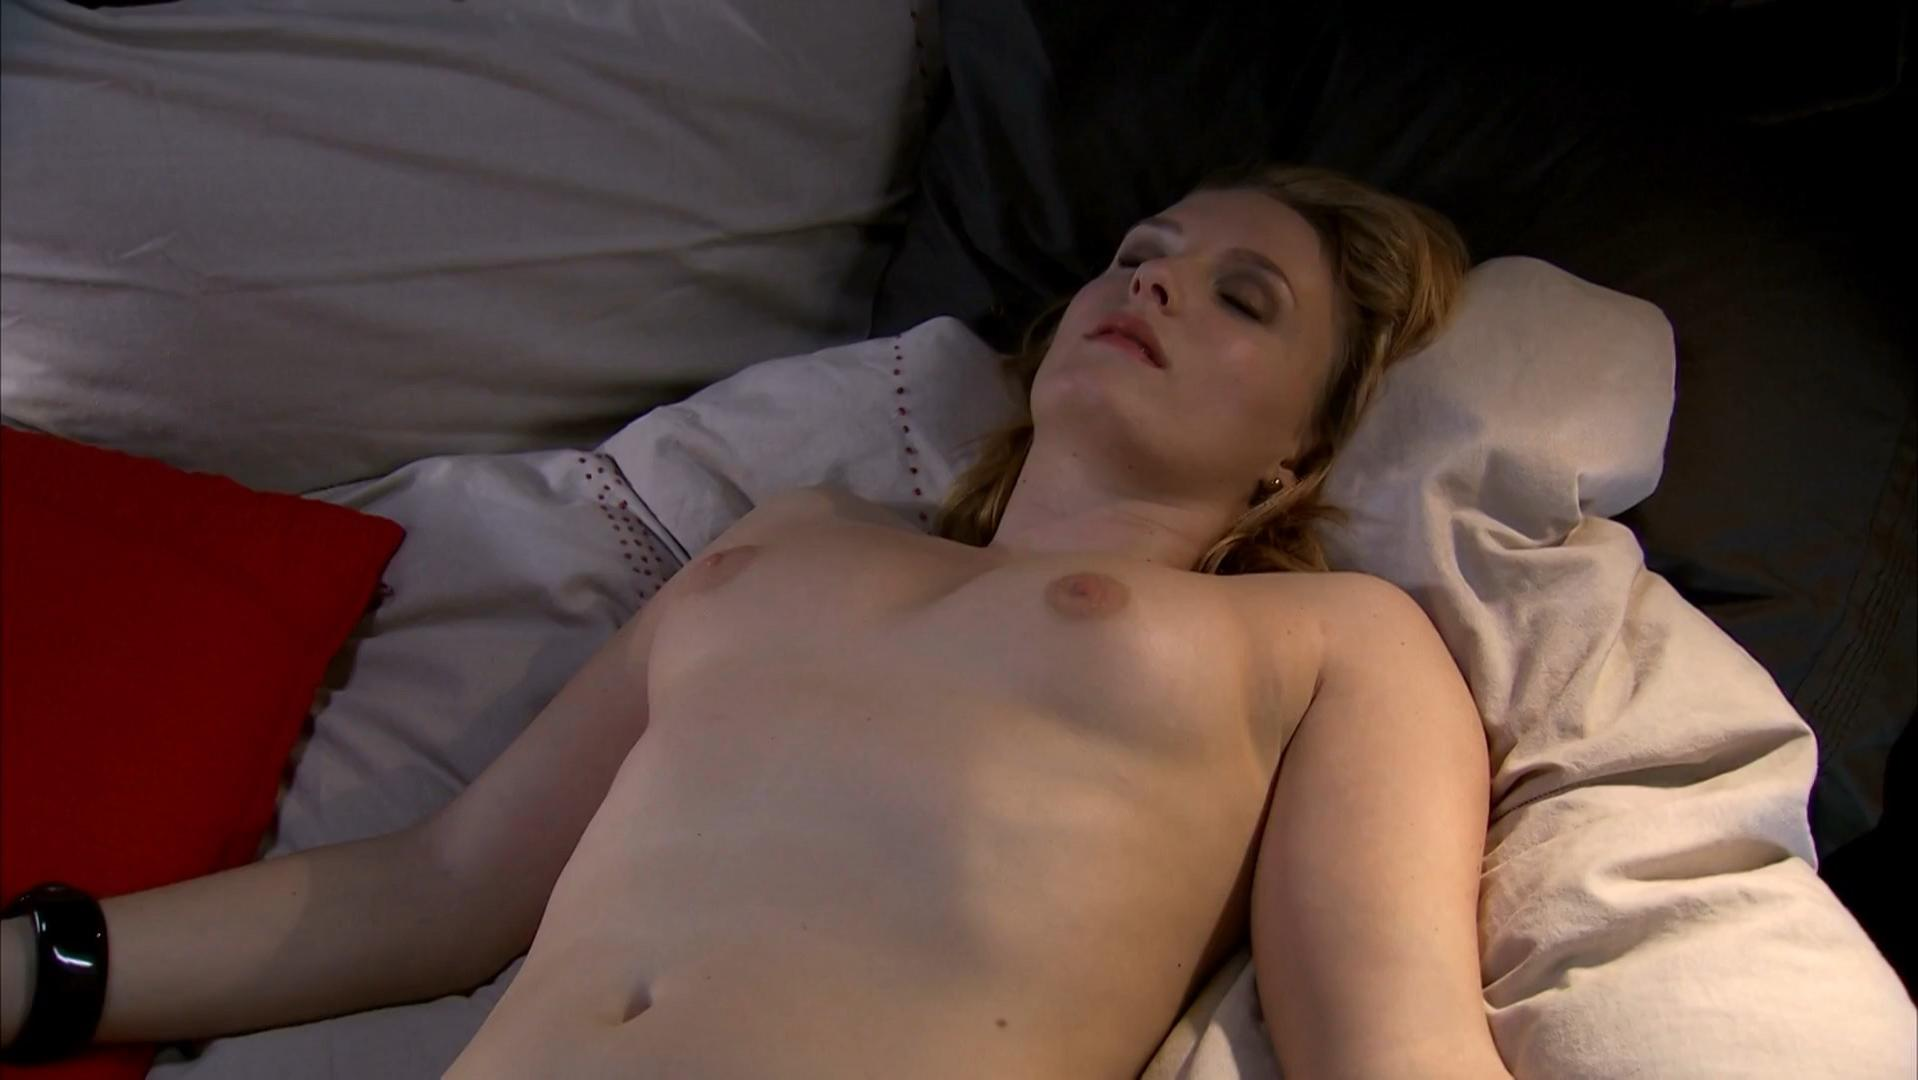 Rachel Blampied nude - The Almighty Johnsons s01e02 (2011)